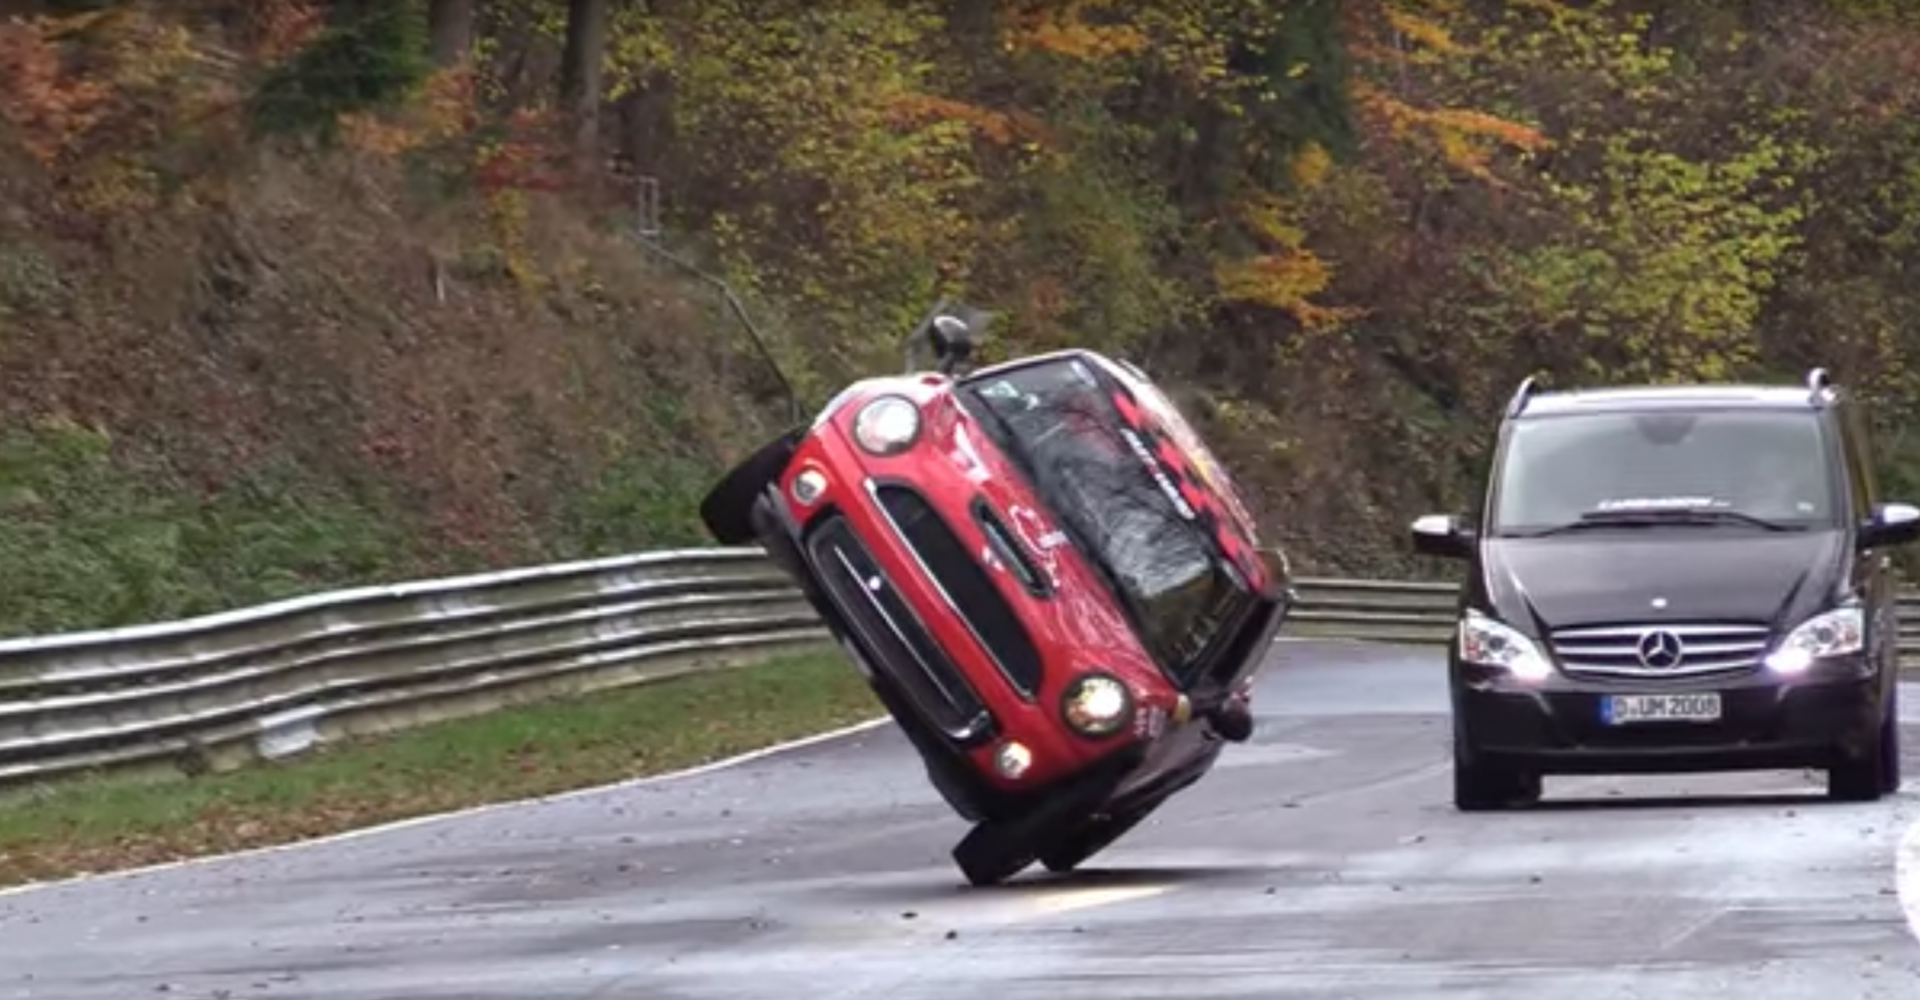 Stunt Driver Skis A Mini Round The Nurburgring